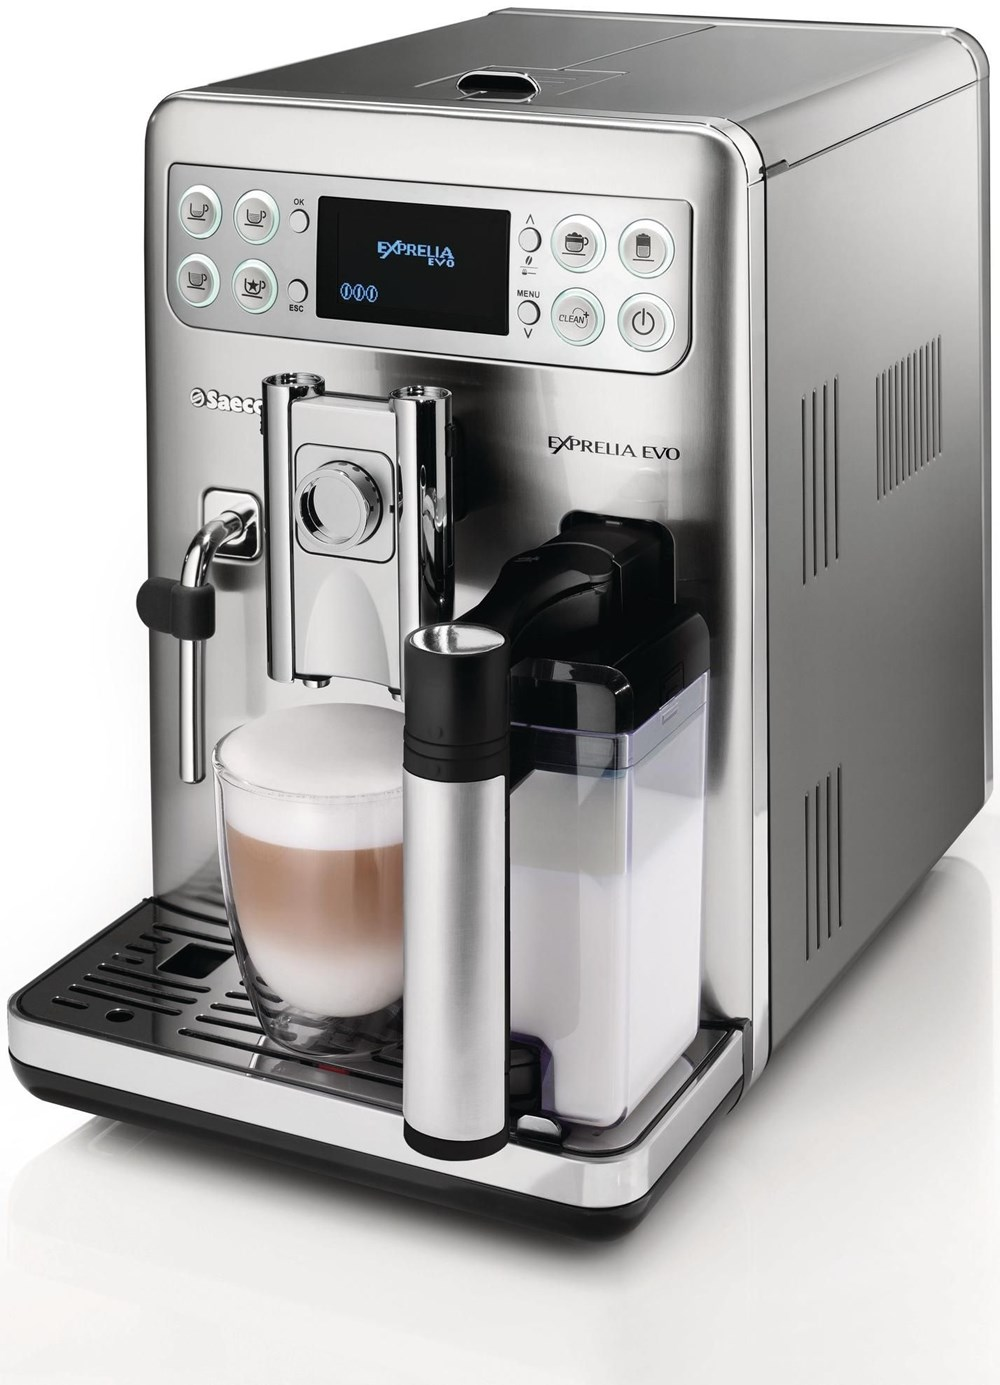 Philips Coffee Maker Bean To Cup : Philips Saeco Exprelia Evo HD8857/01 - Bean-to-Cup Coffee Machines - computeruniverse